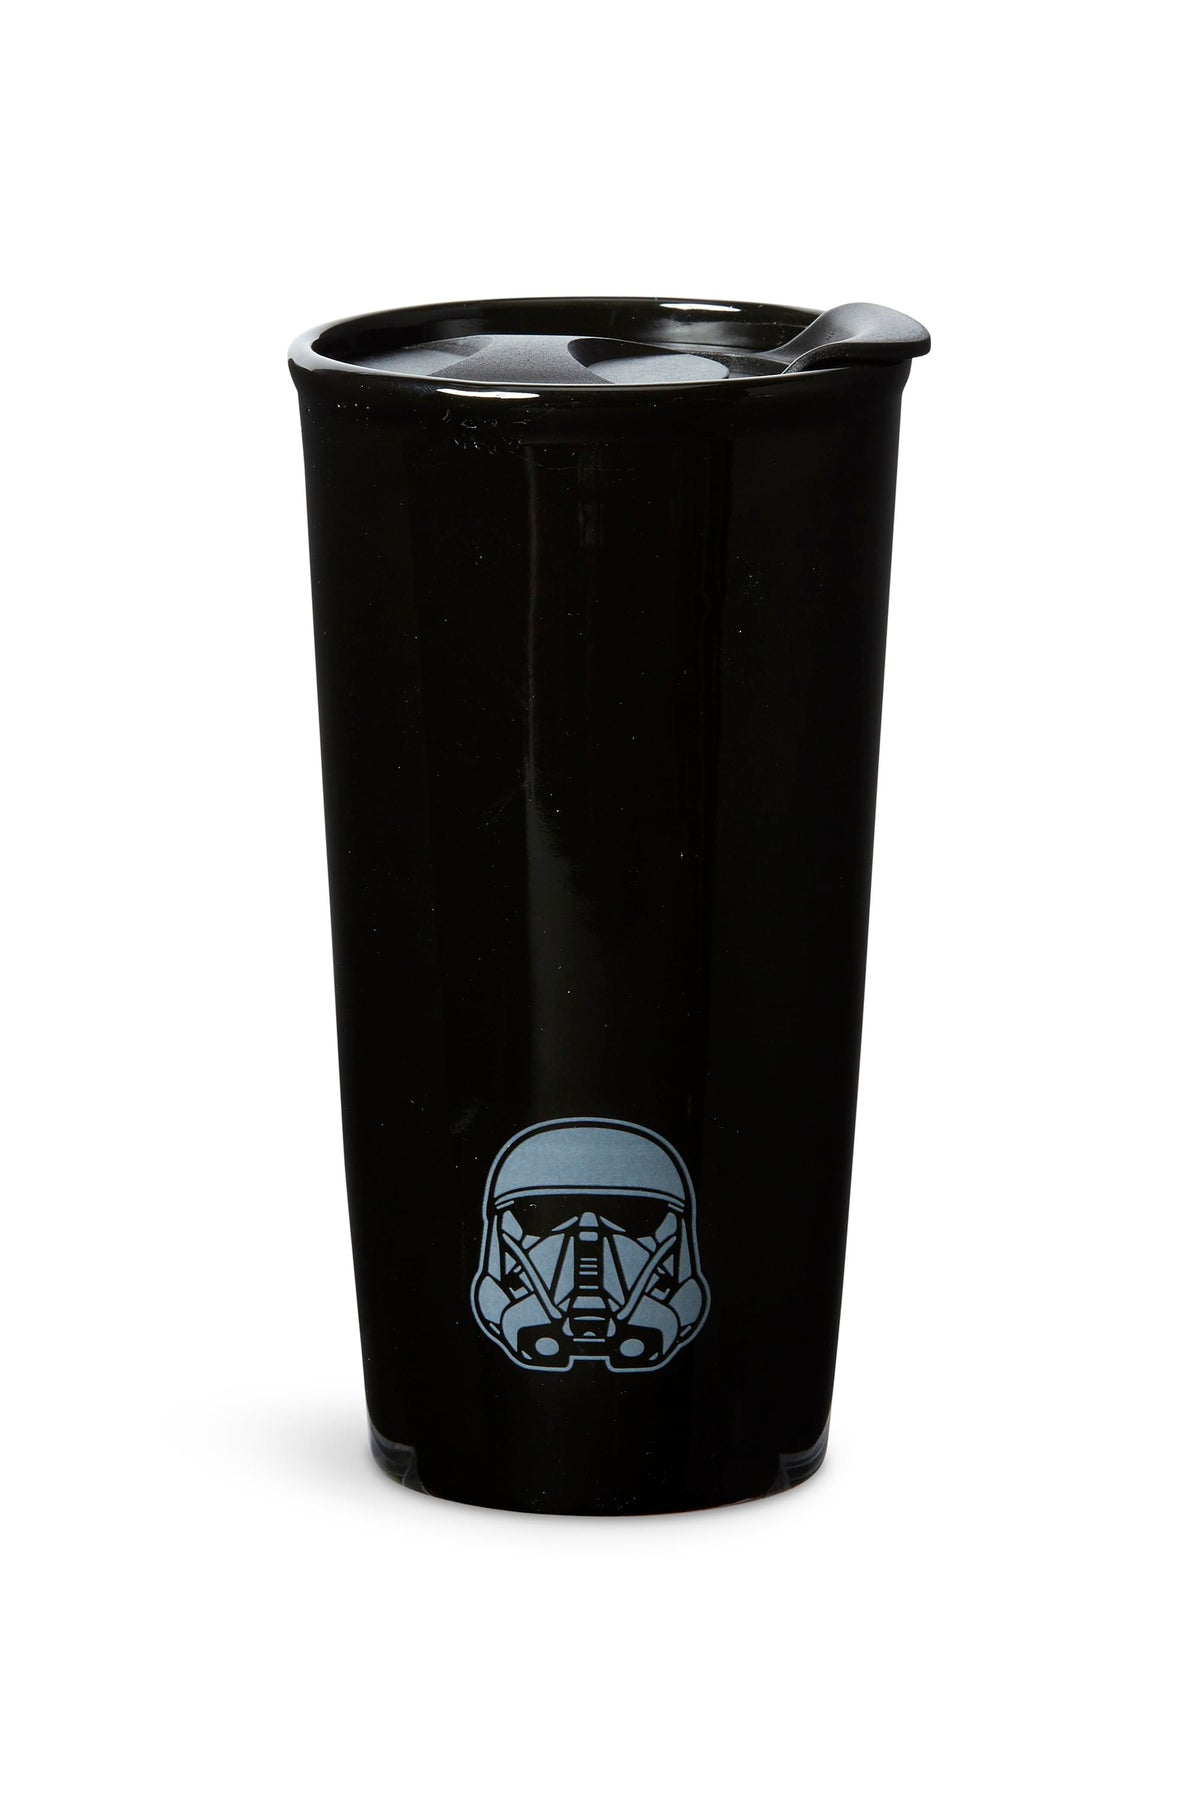 Star Wars: Rogue One Ceramic Travel Mug with Lid - Death Trooper